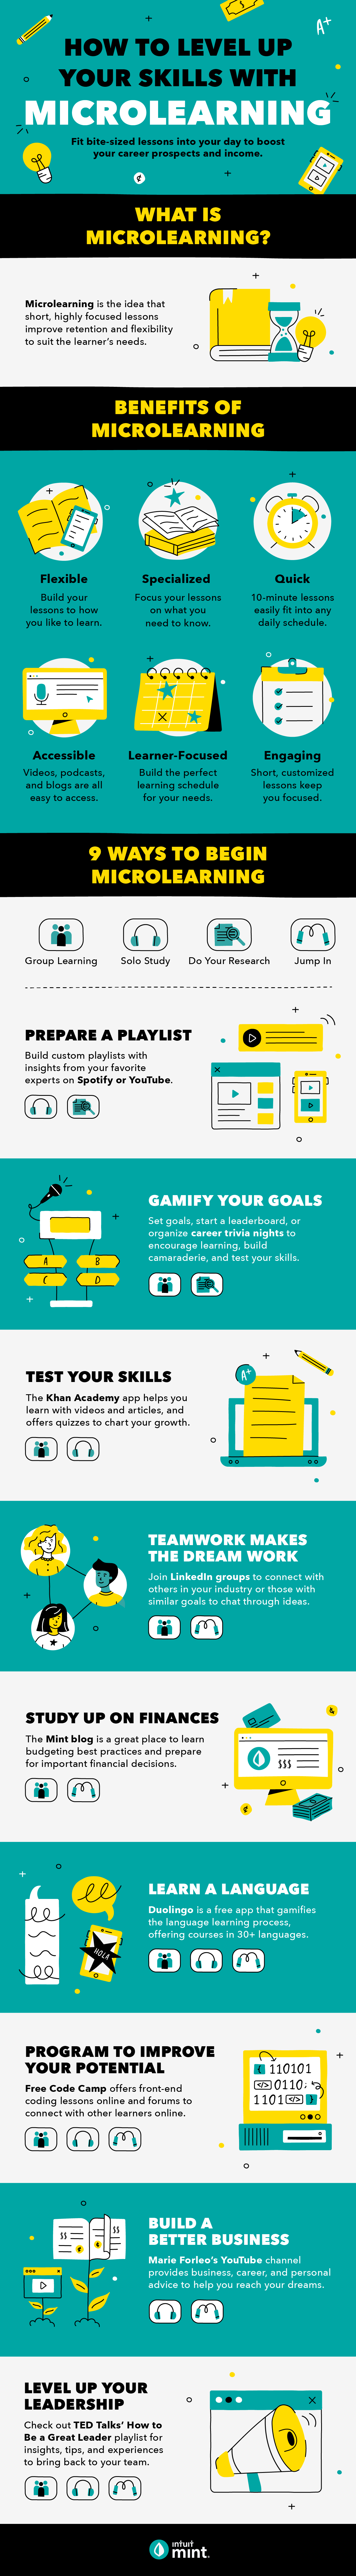 infographic on microlearning techniques and benefits